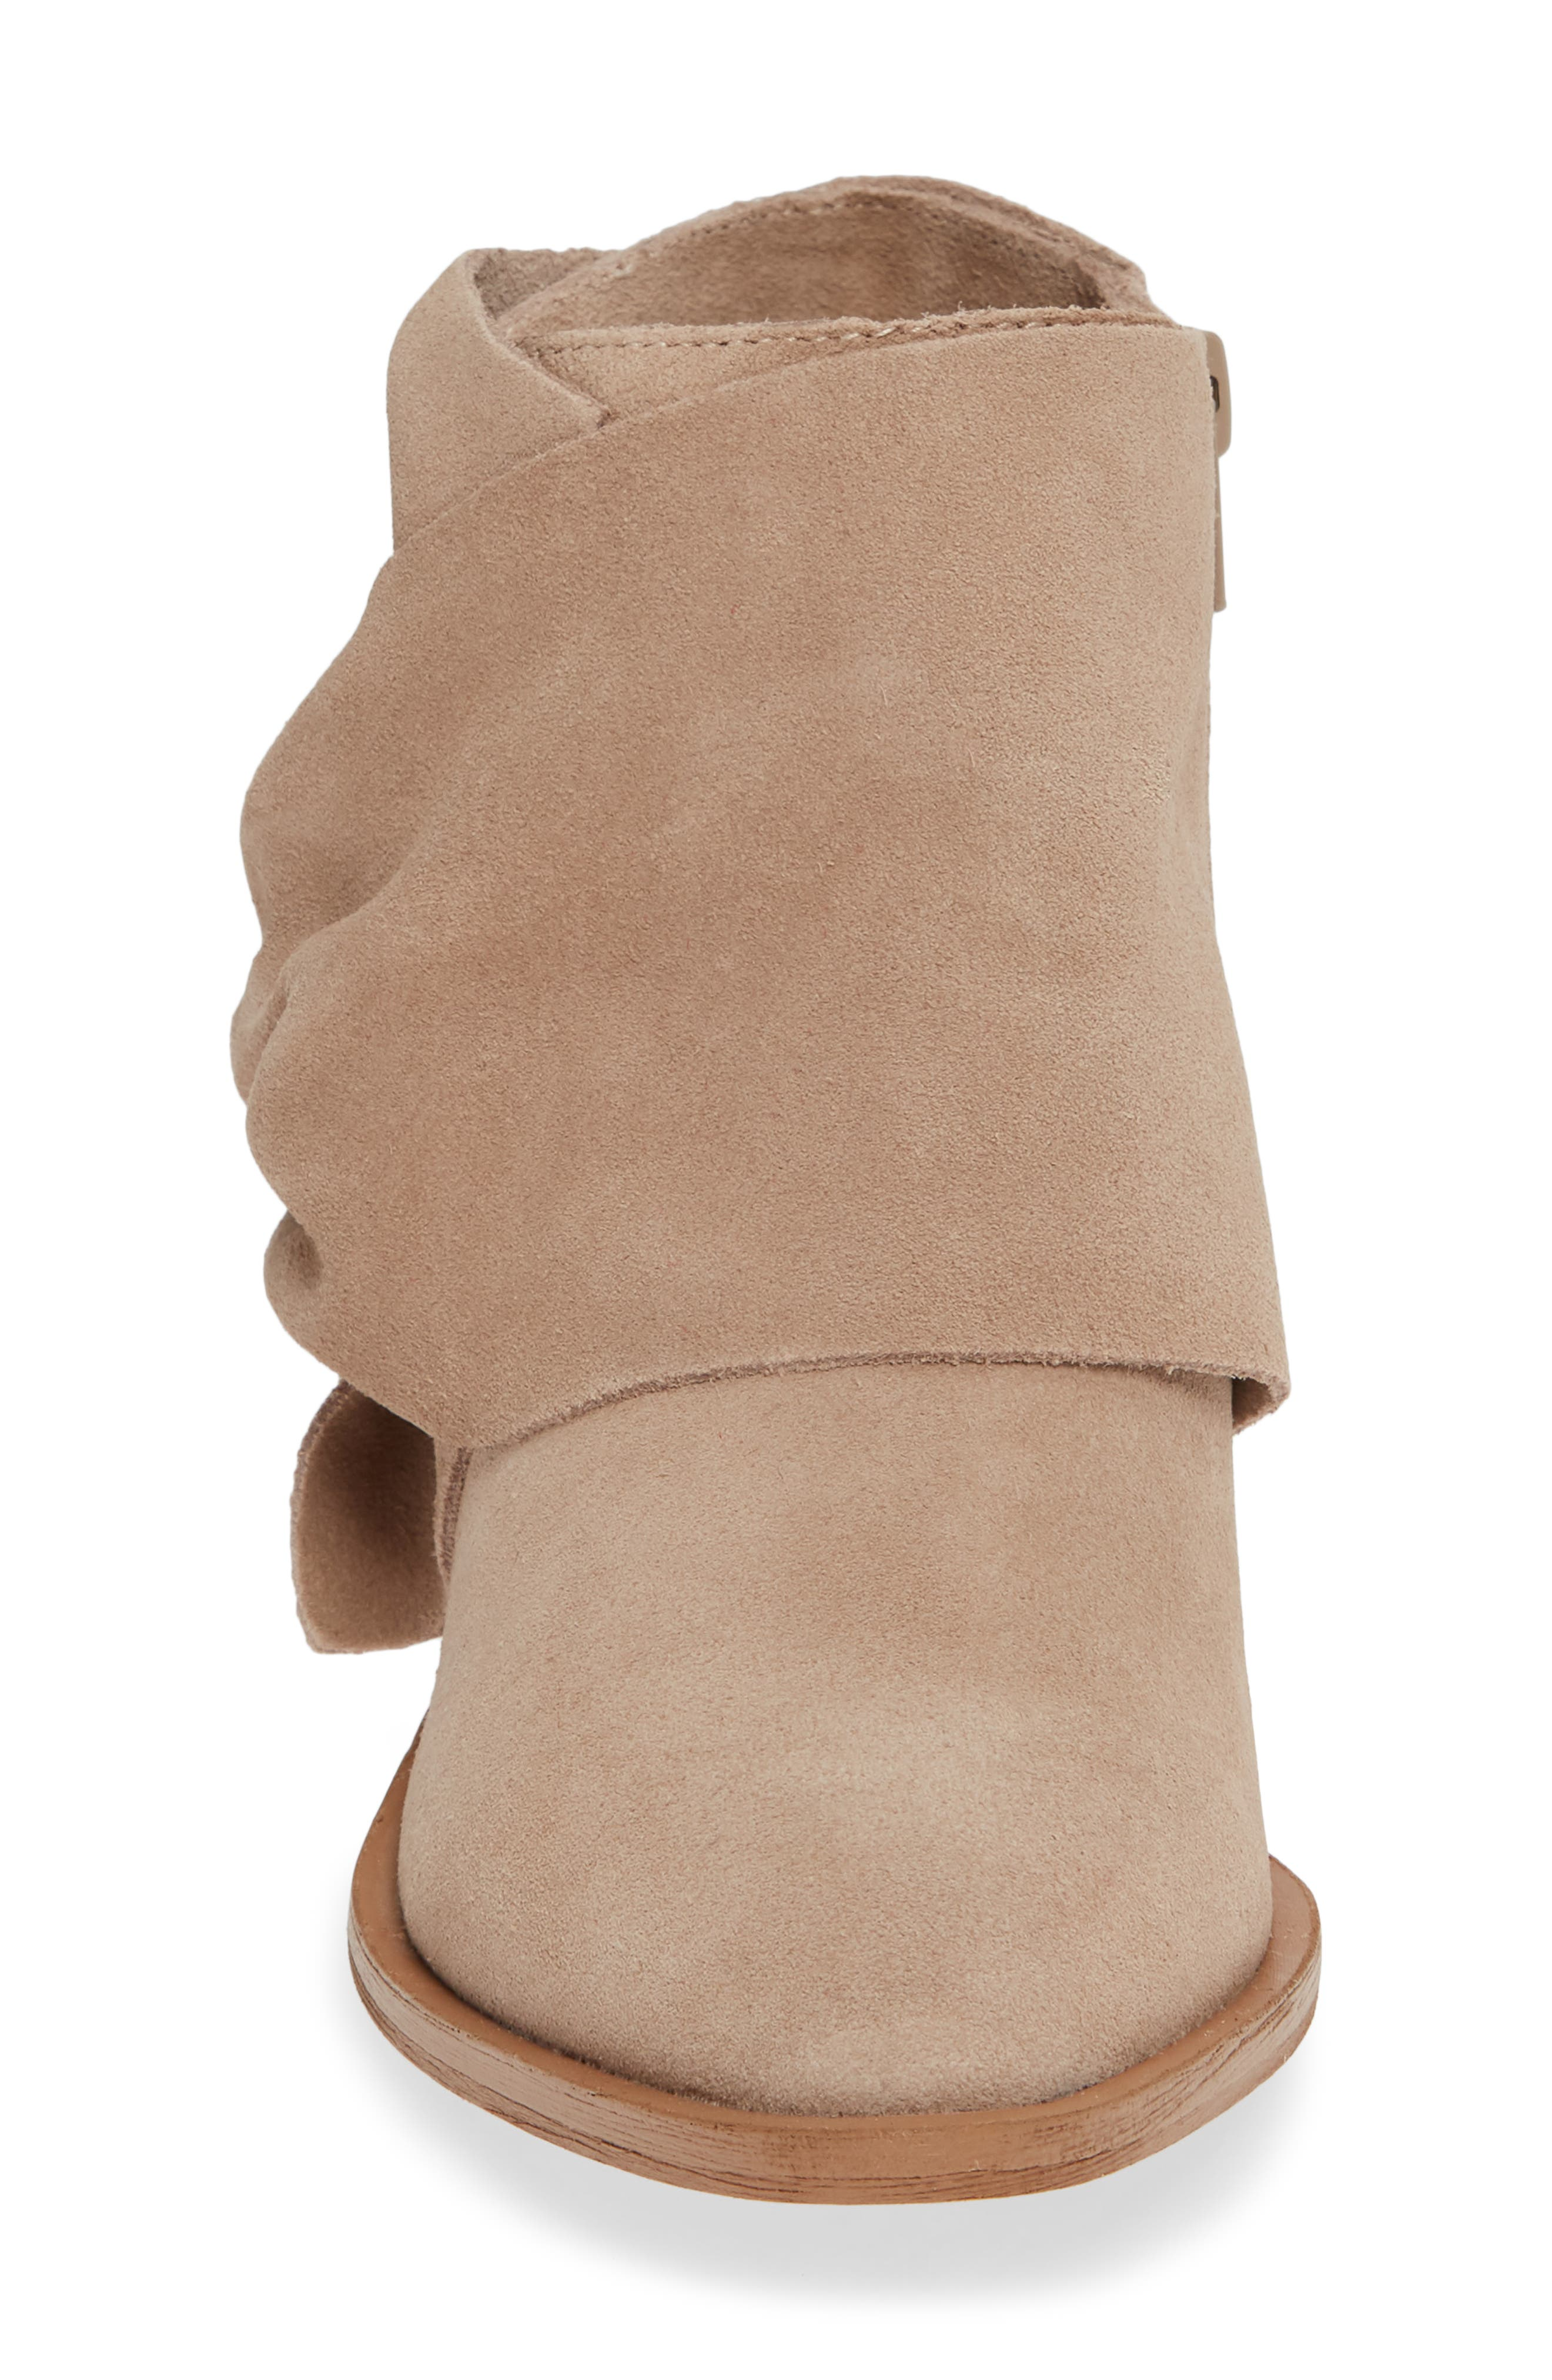 Natalyia Bootie,                             Alternate thumbnail 4, color,                             WARM TAUPE SUEDE